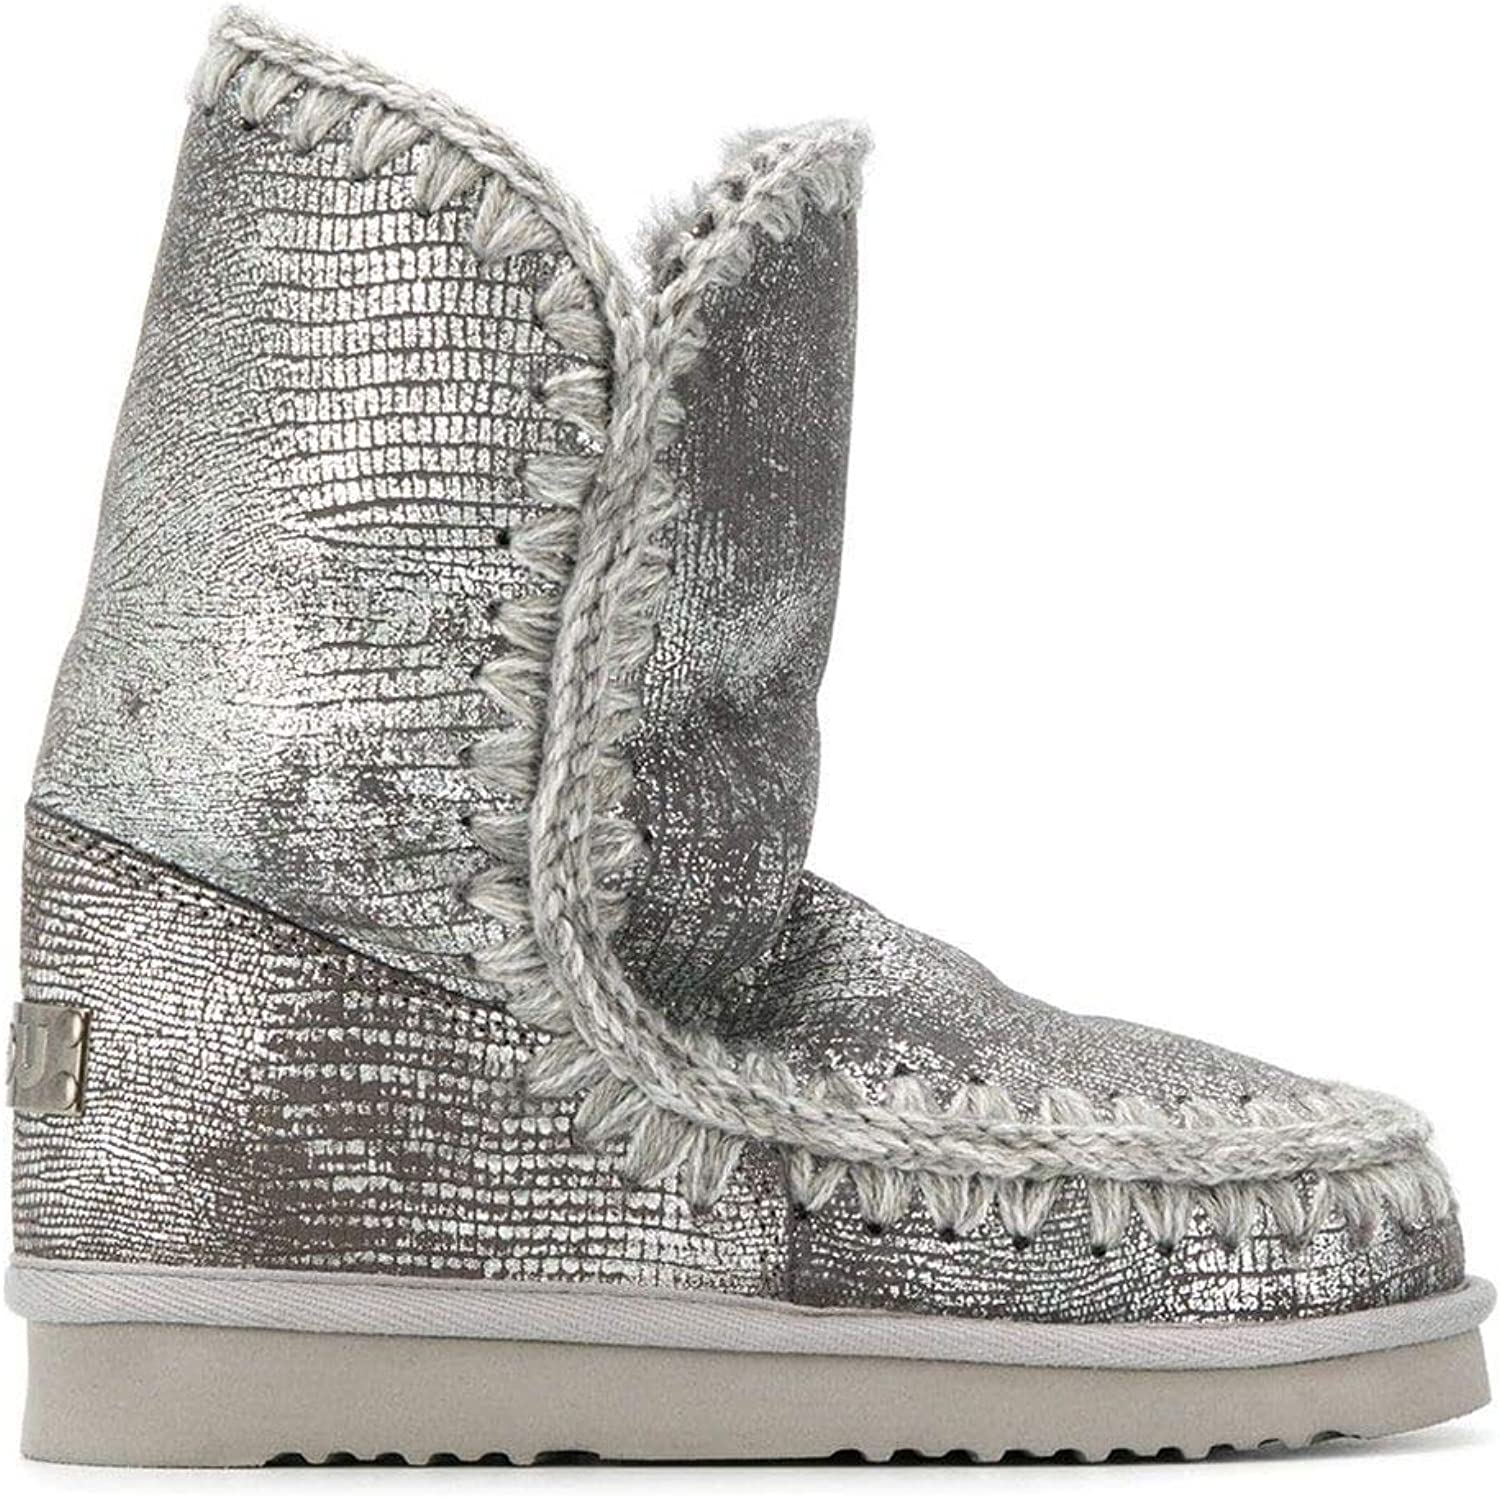 Mou Luxury Fashion Womens FW101000CGKSIROSILVER Silver Ankle Boots | Fall Winter 19 71JWipHpH8LUL1500_